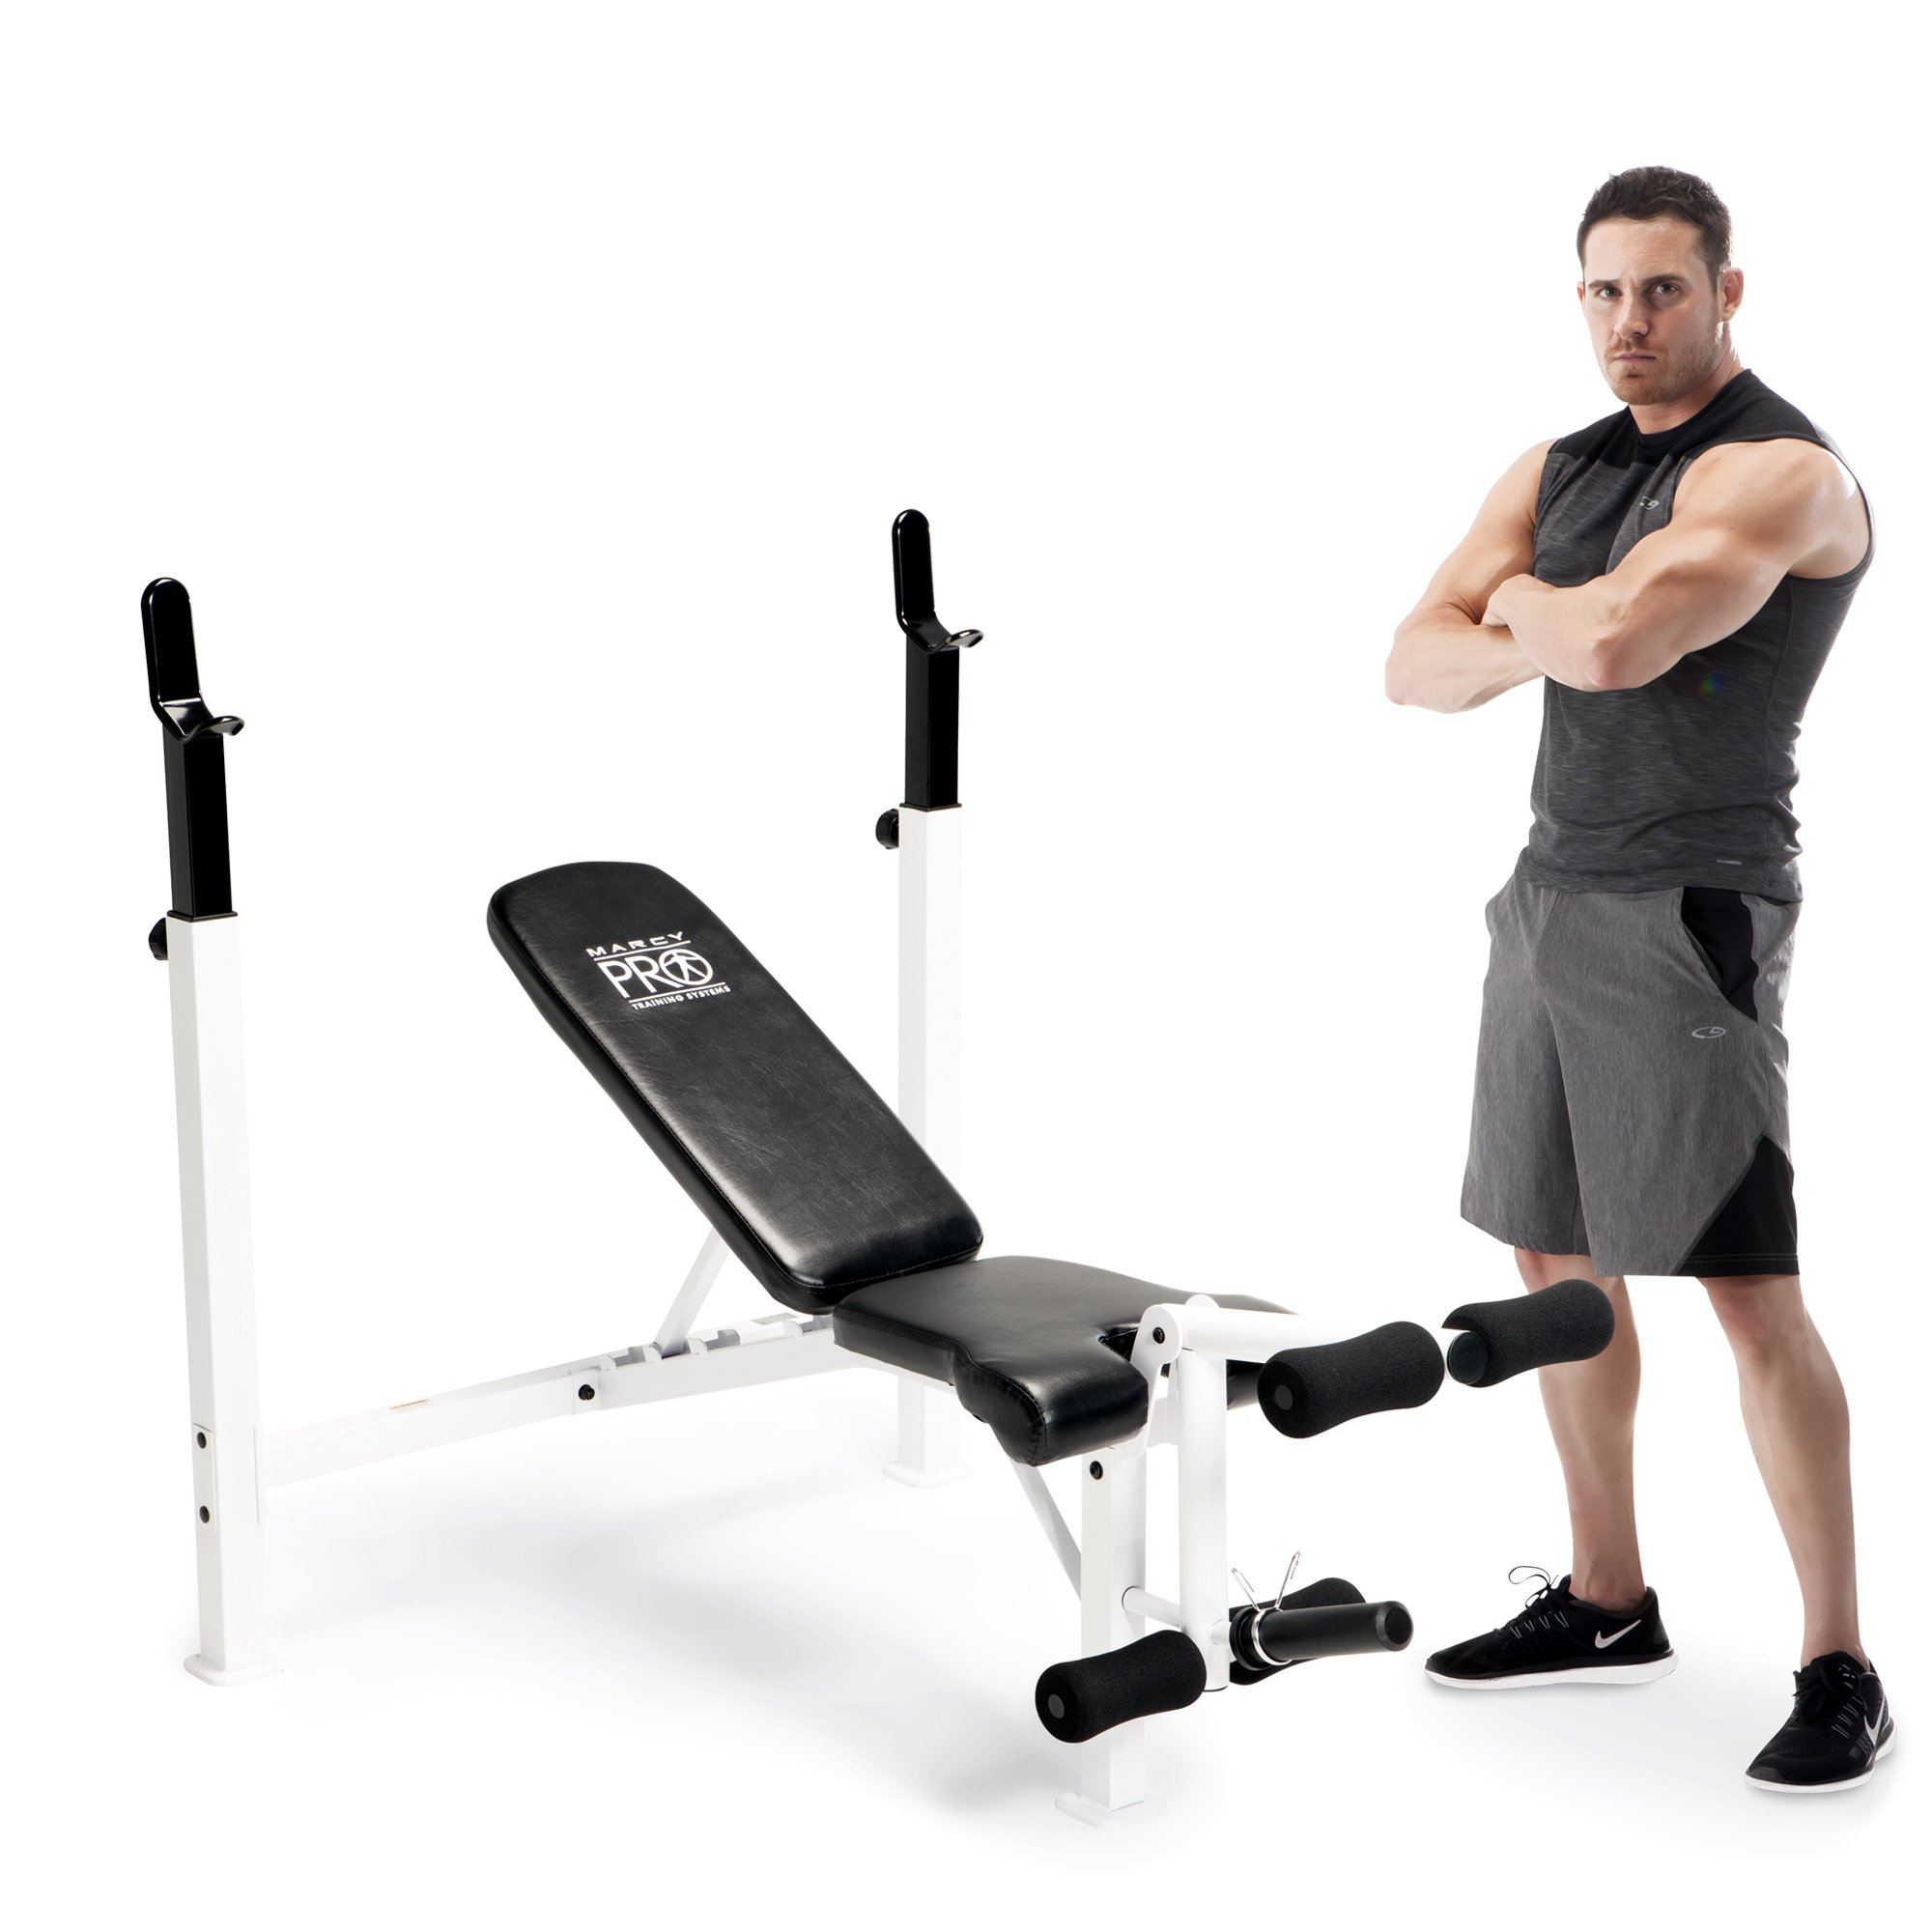 Marcy Fitness Adjustable Olympic Home Gym Weight Lifting Workout Bench w/ Rack